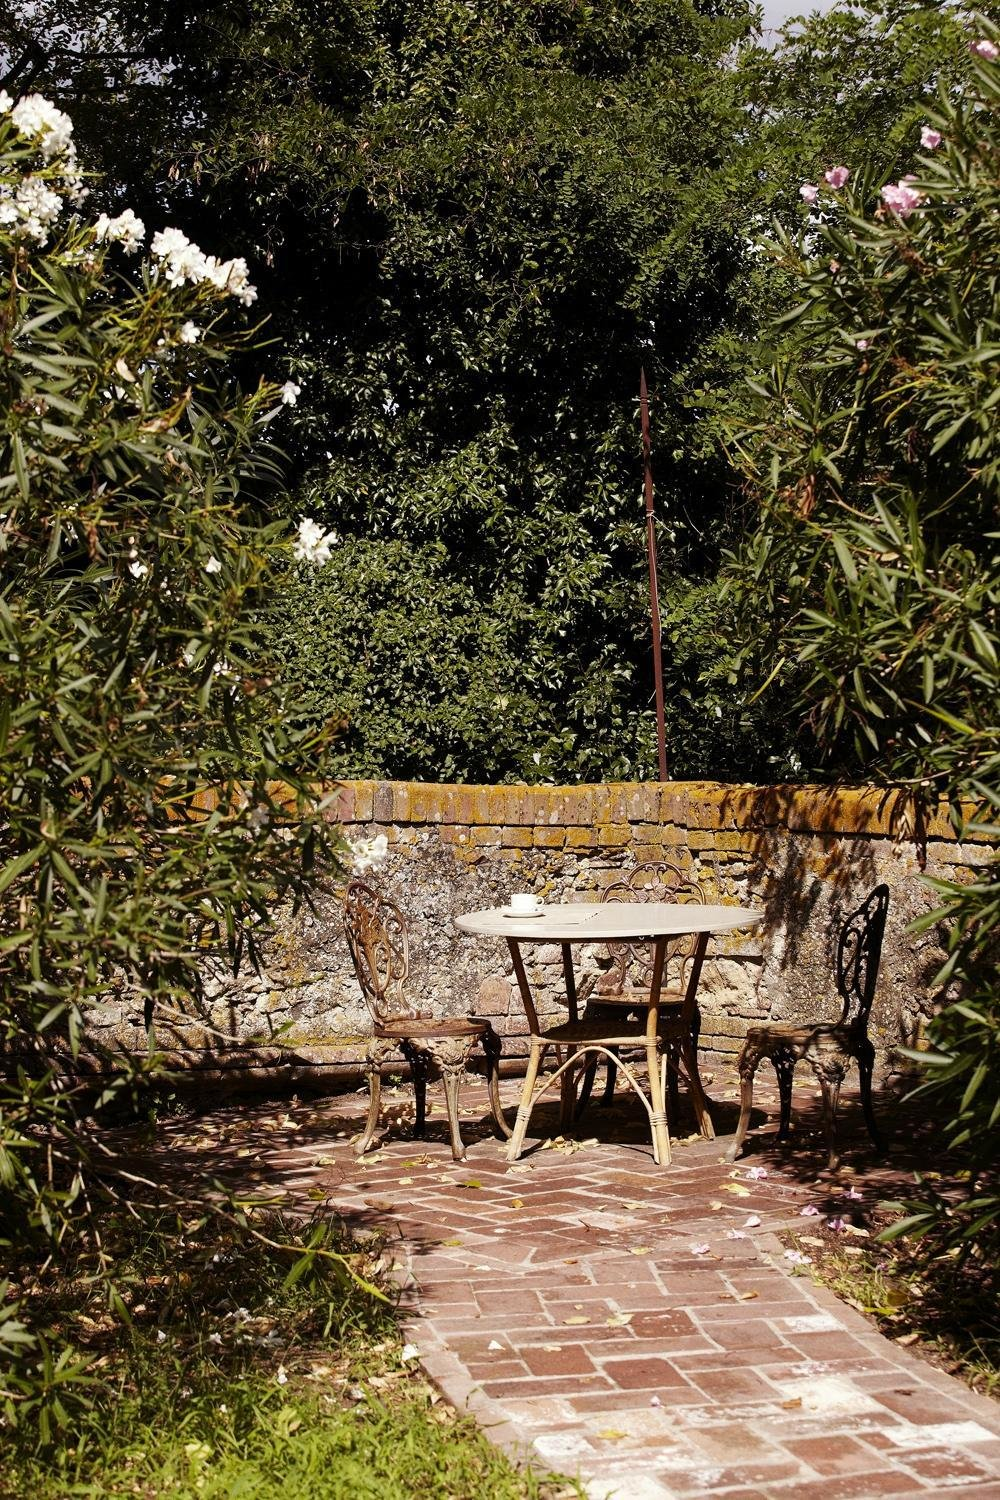 Outdoor, Stone Fences, Wall, Trees, and Pavers Patio, Porch, Deck  Villa Lena Agriturismo